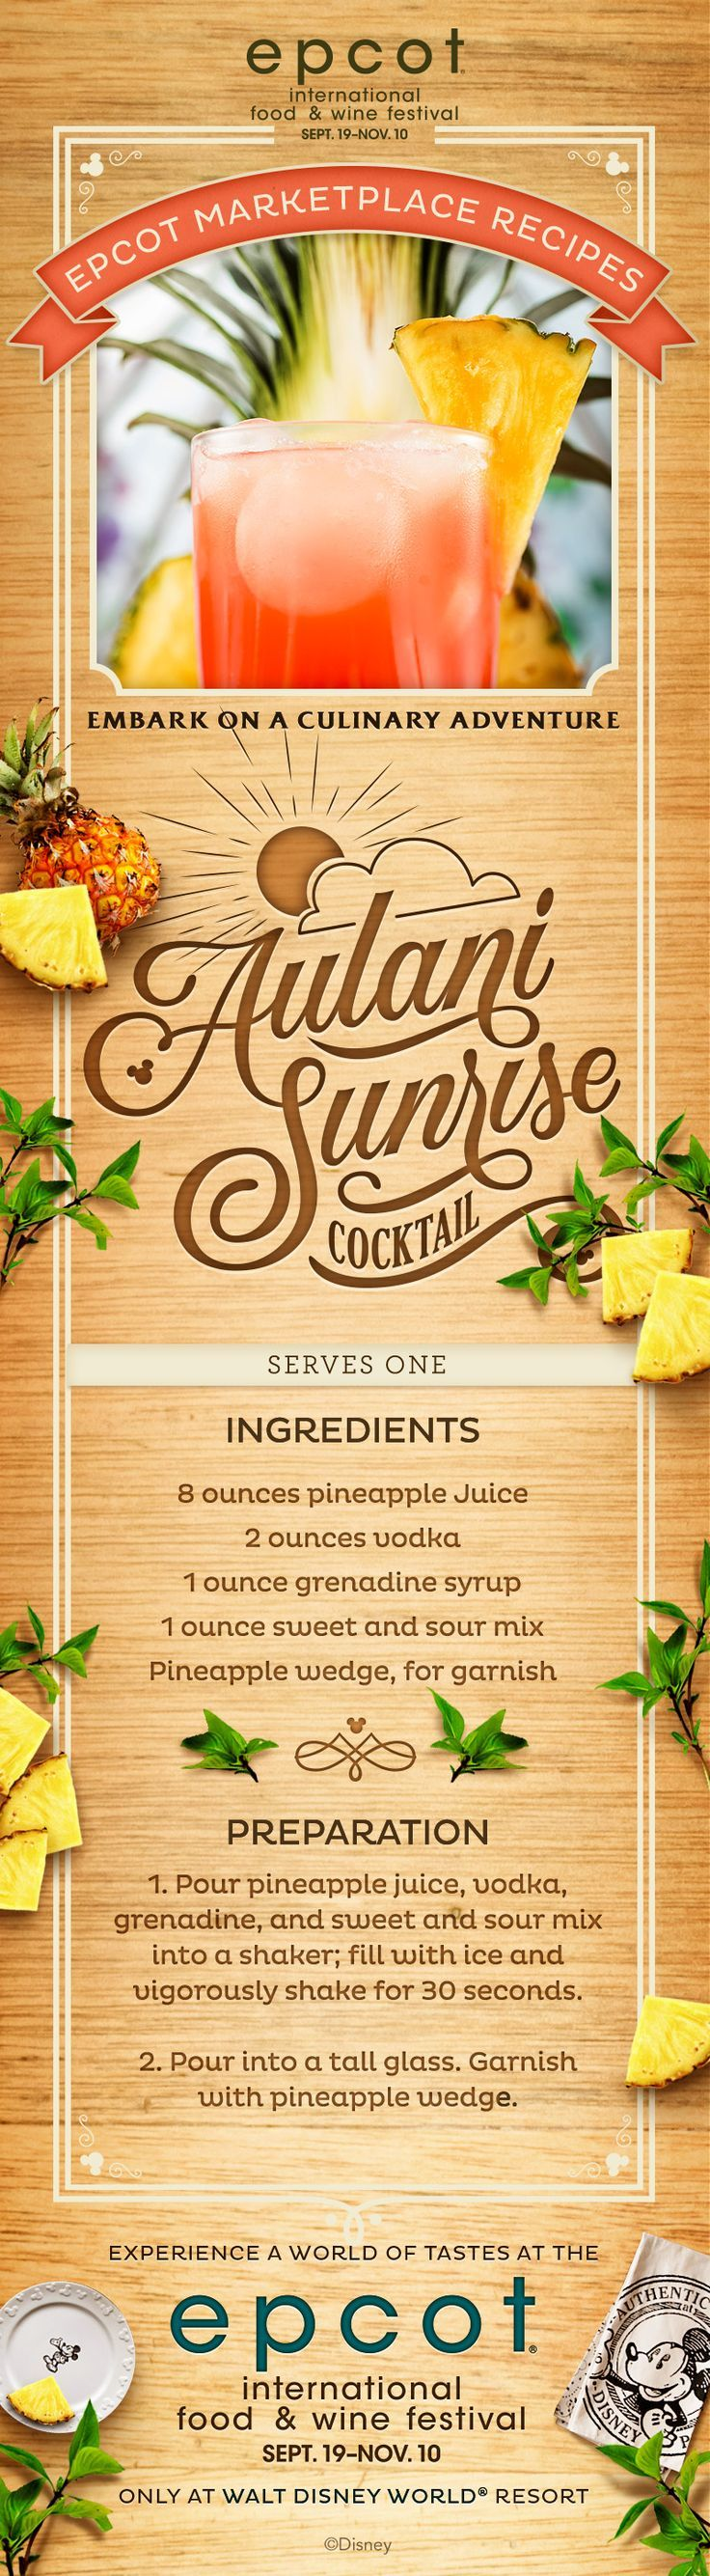 Epcot International Food & Wine Festival Recipe: Aulani Sunrise Cocktail with pineapple, vodka, grenadine and sweet and sour mix.